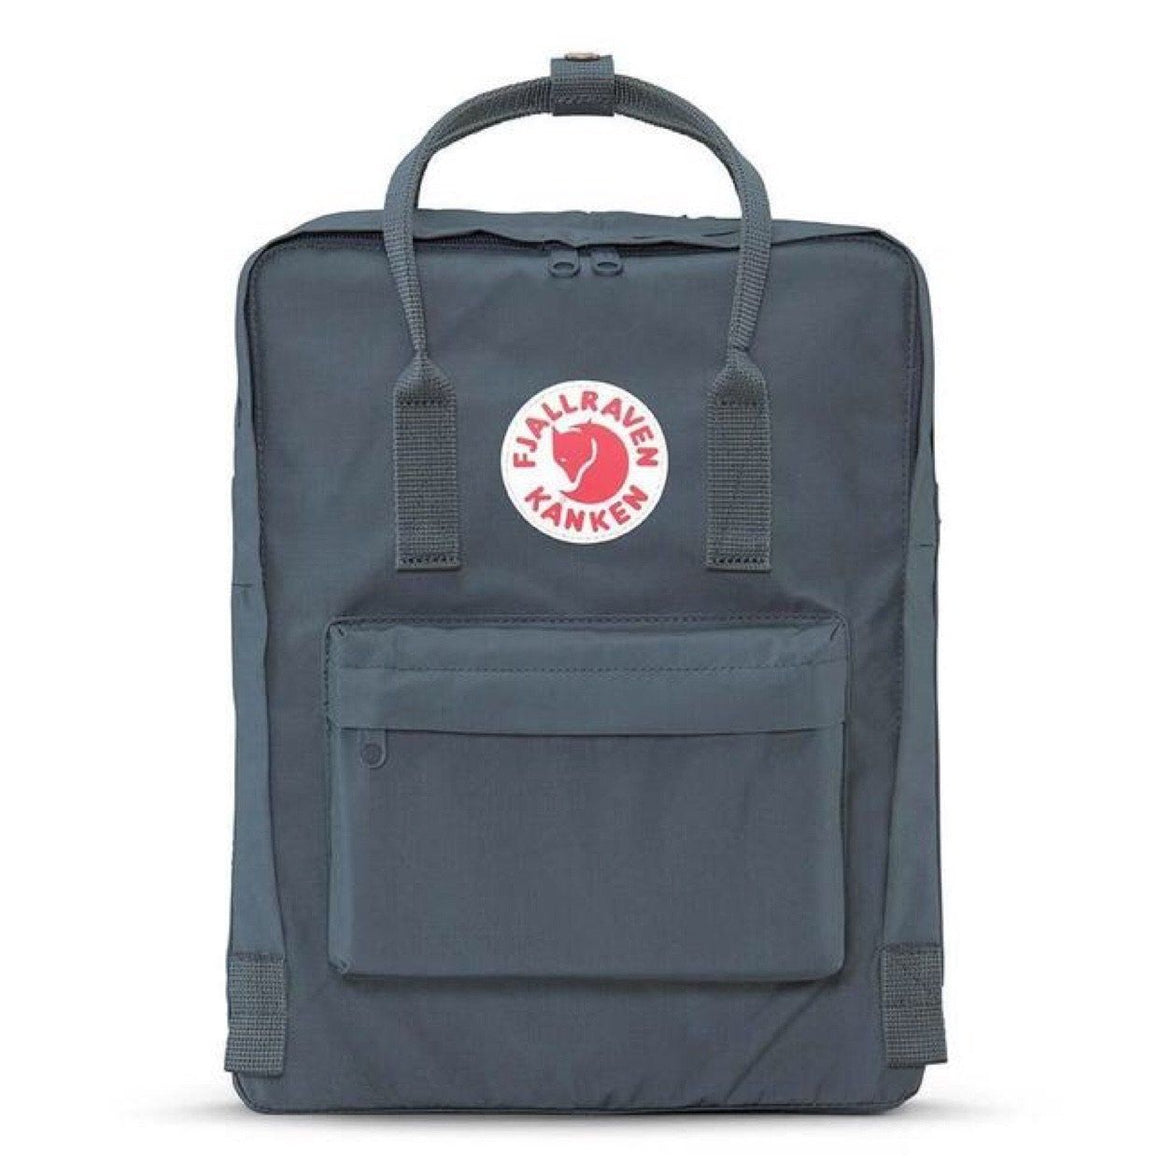 Fjallraven - Kanken 16L Back Pack - Graphite Backpack Fjallraven